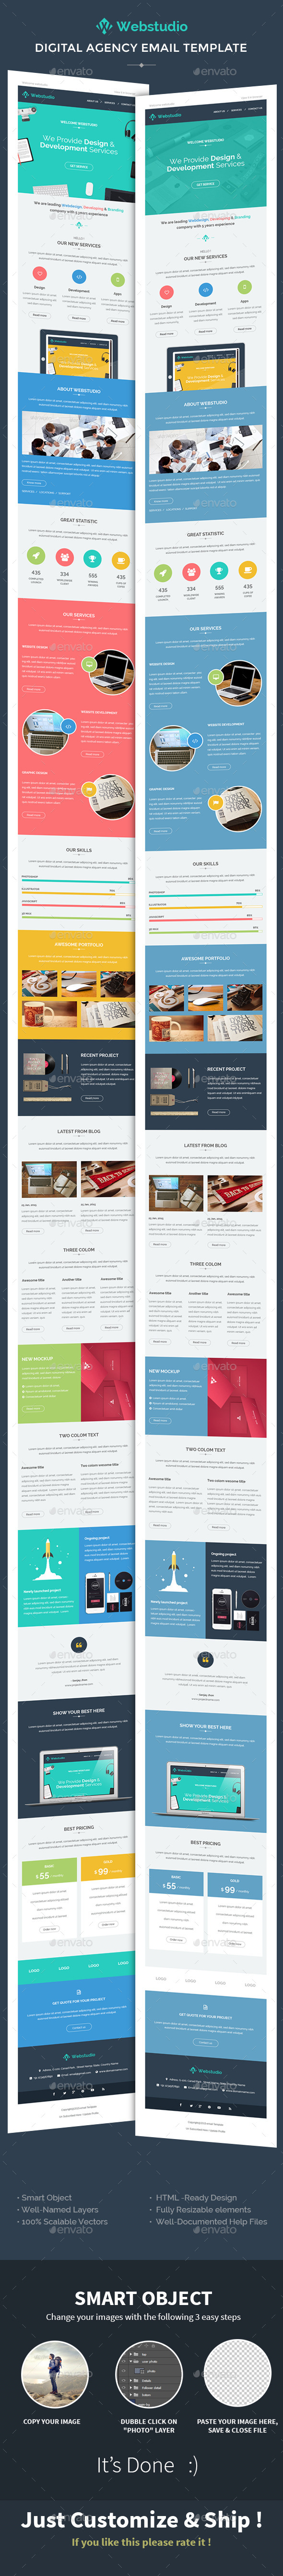 GraphicRiver WebStudio Digital Agency E-newsletter PSD Template 10175290